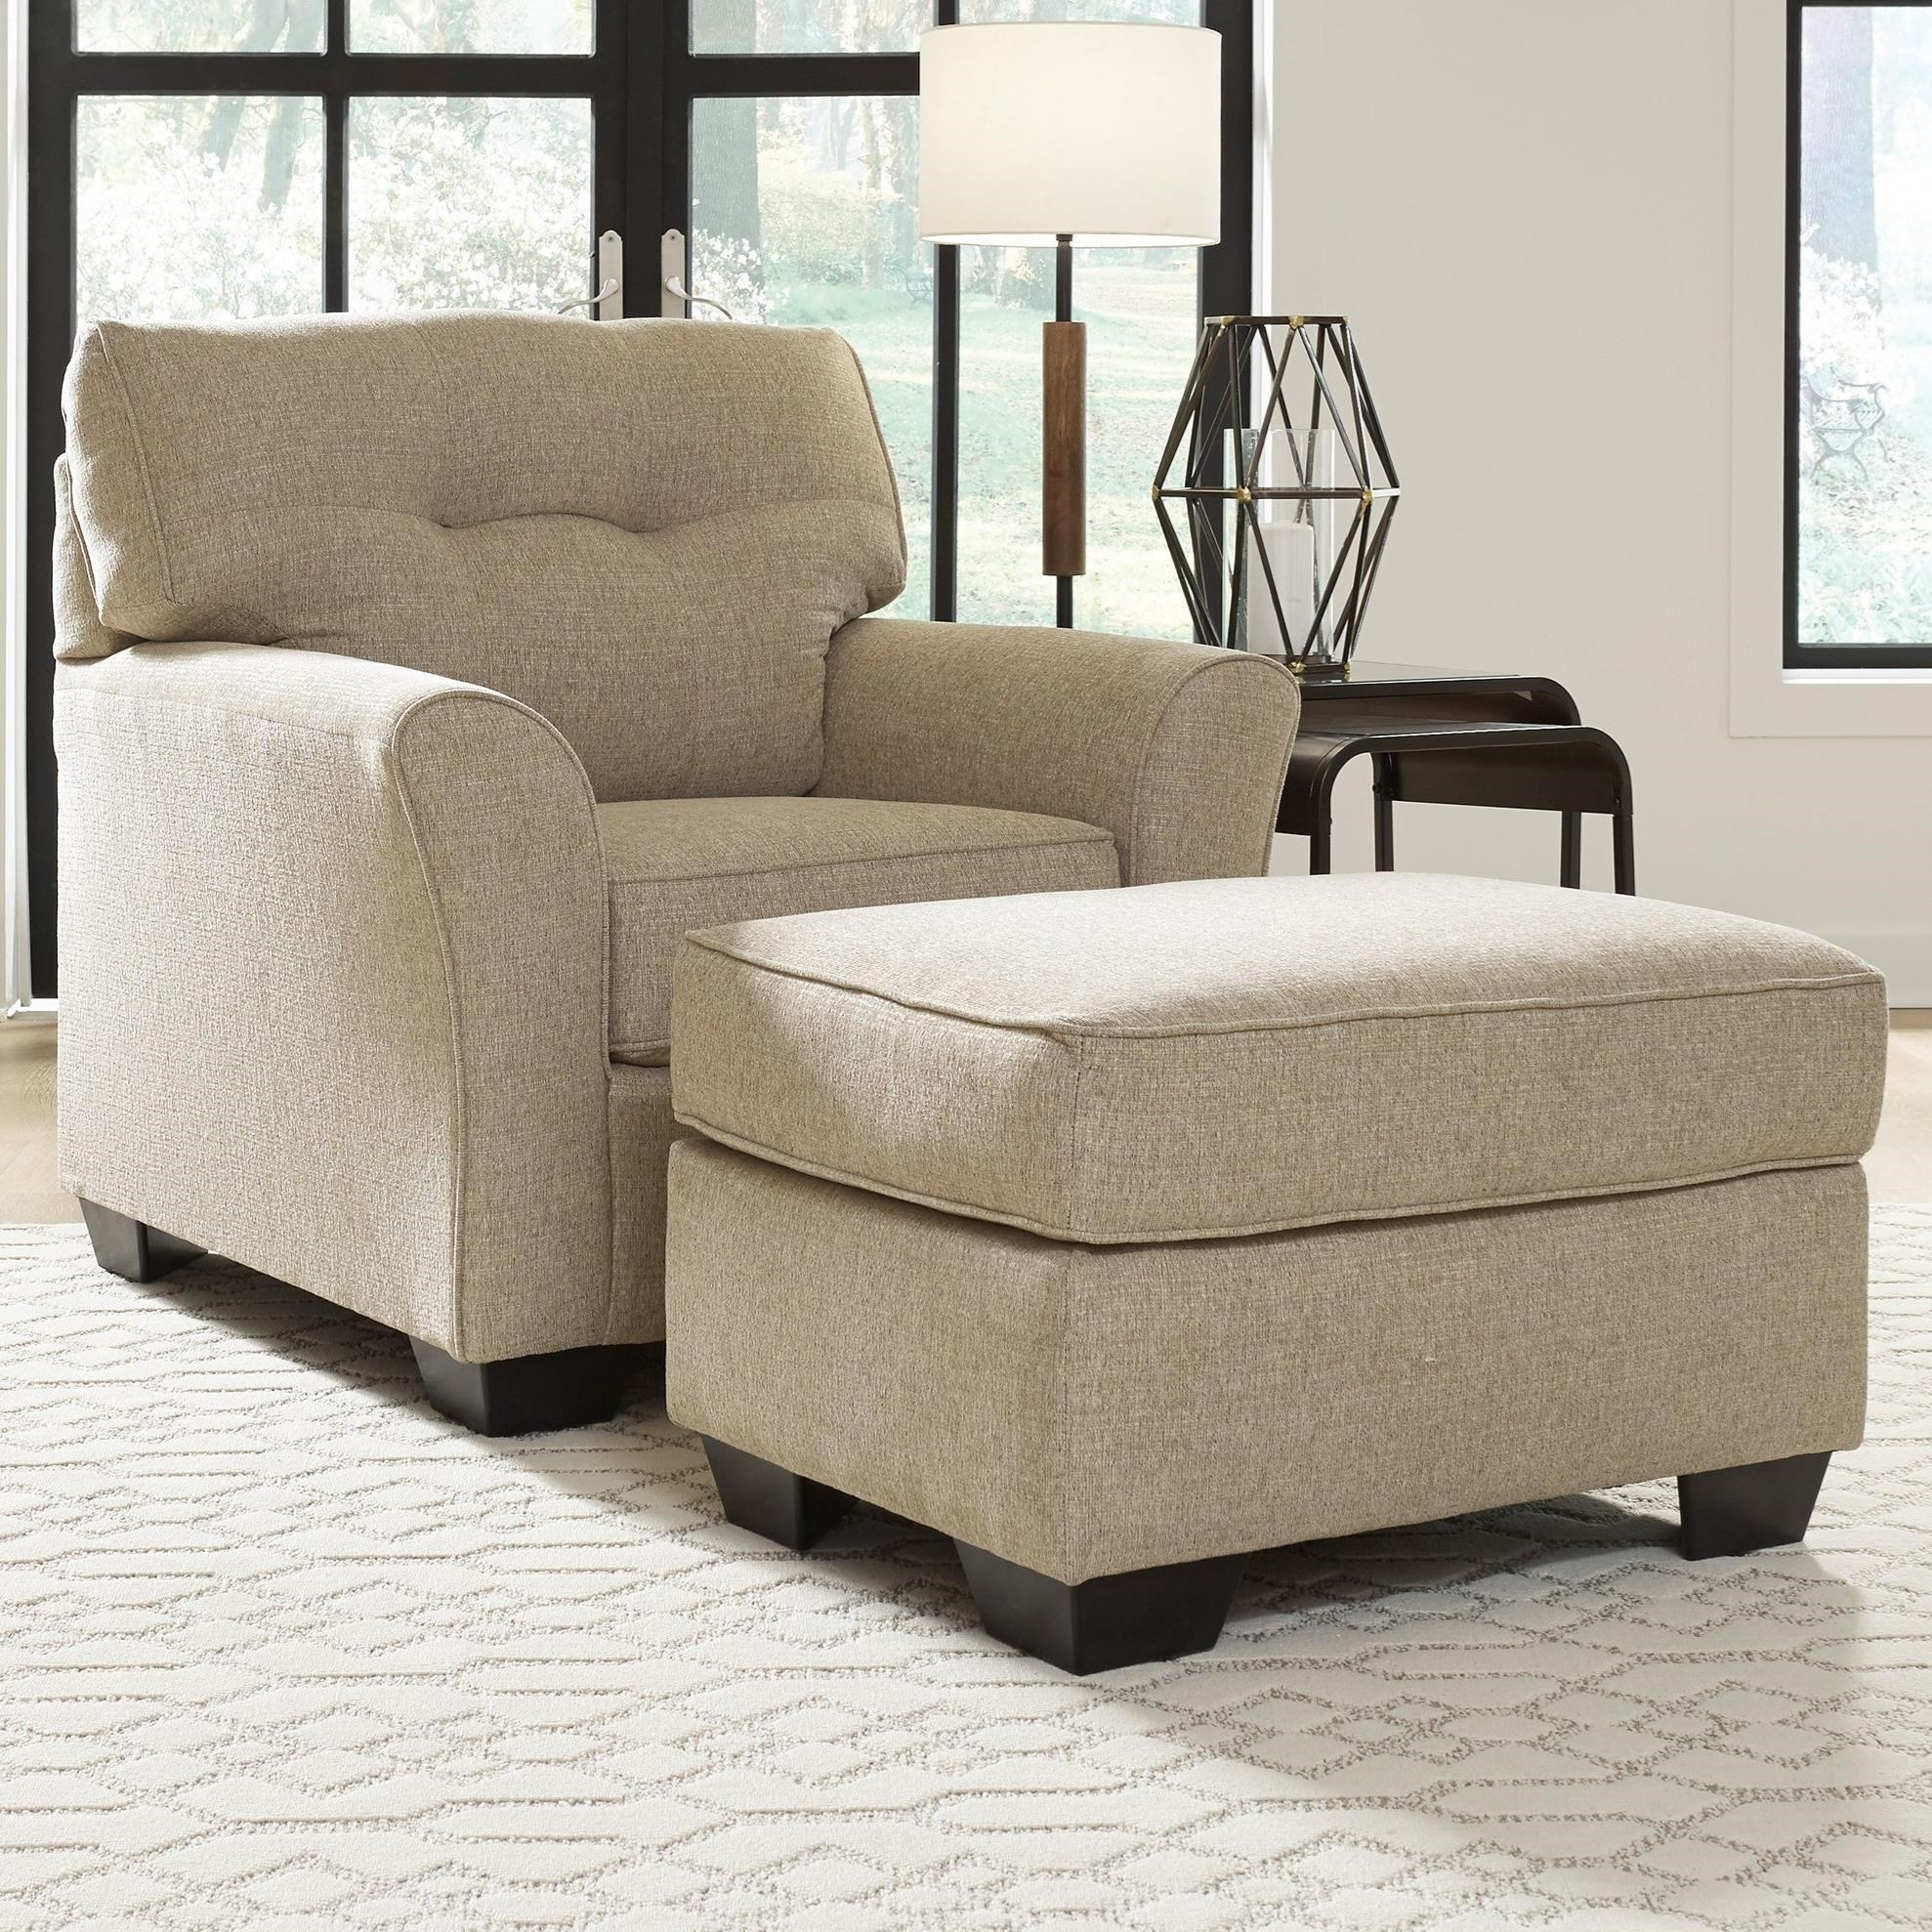 Ardmead Chair & Ottoman by Benchcraft at Catalog Outlet